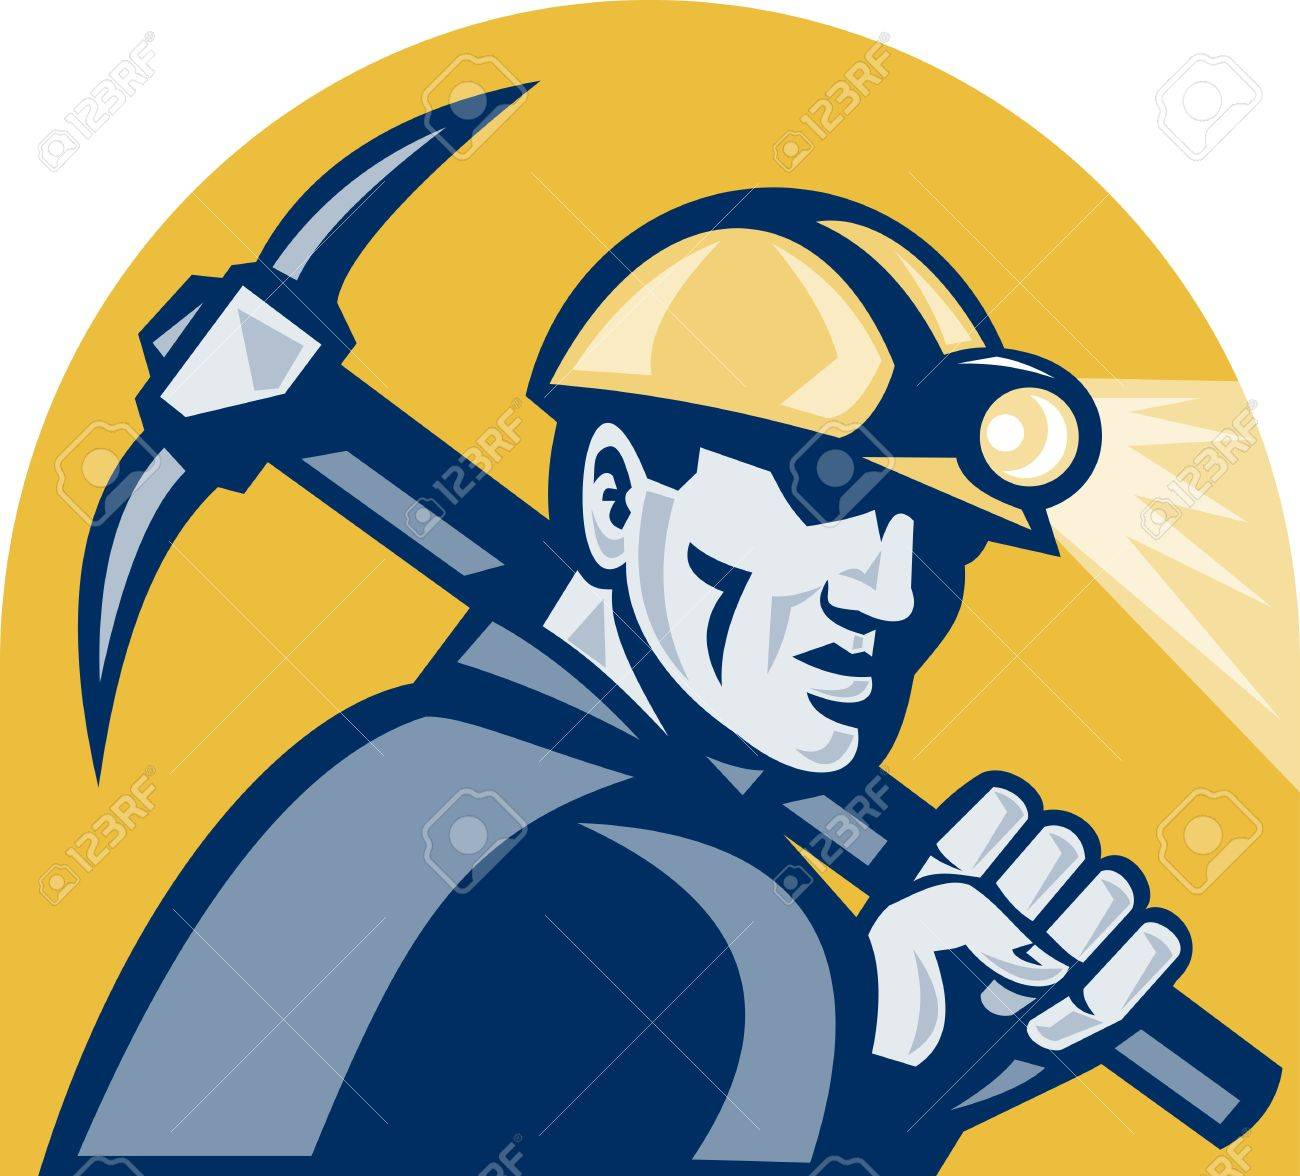 illustration of a coal miner working with pickaxe viewed from the side looking front isolated white background done in retro woodcut style. Stock Illustration - 12107296